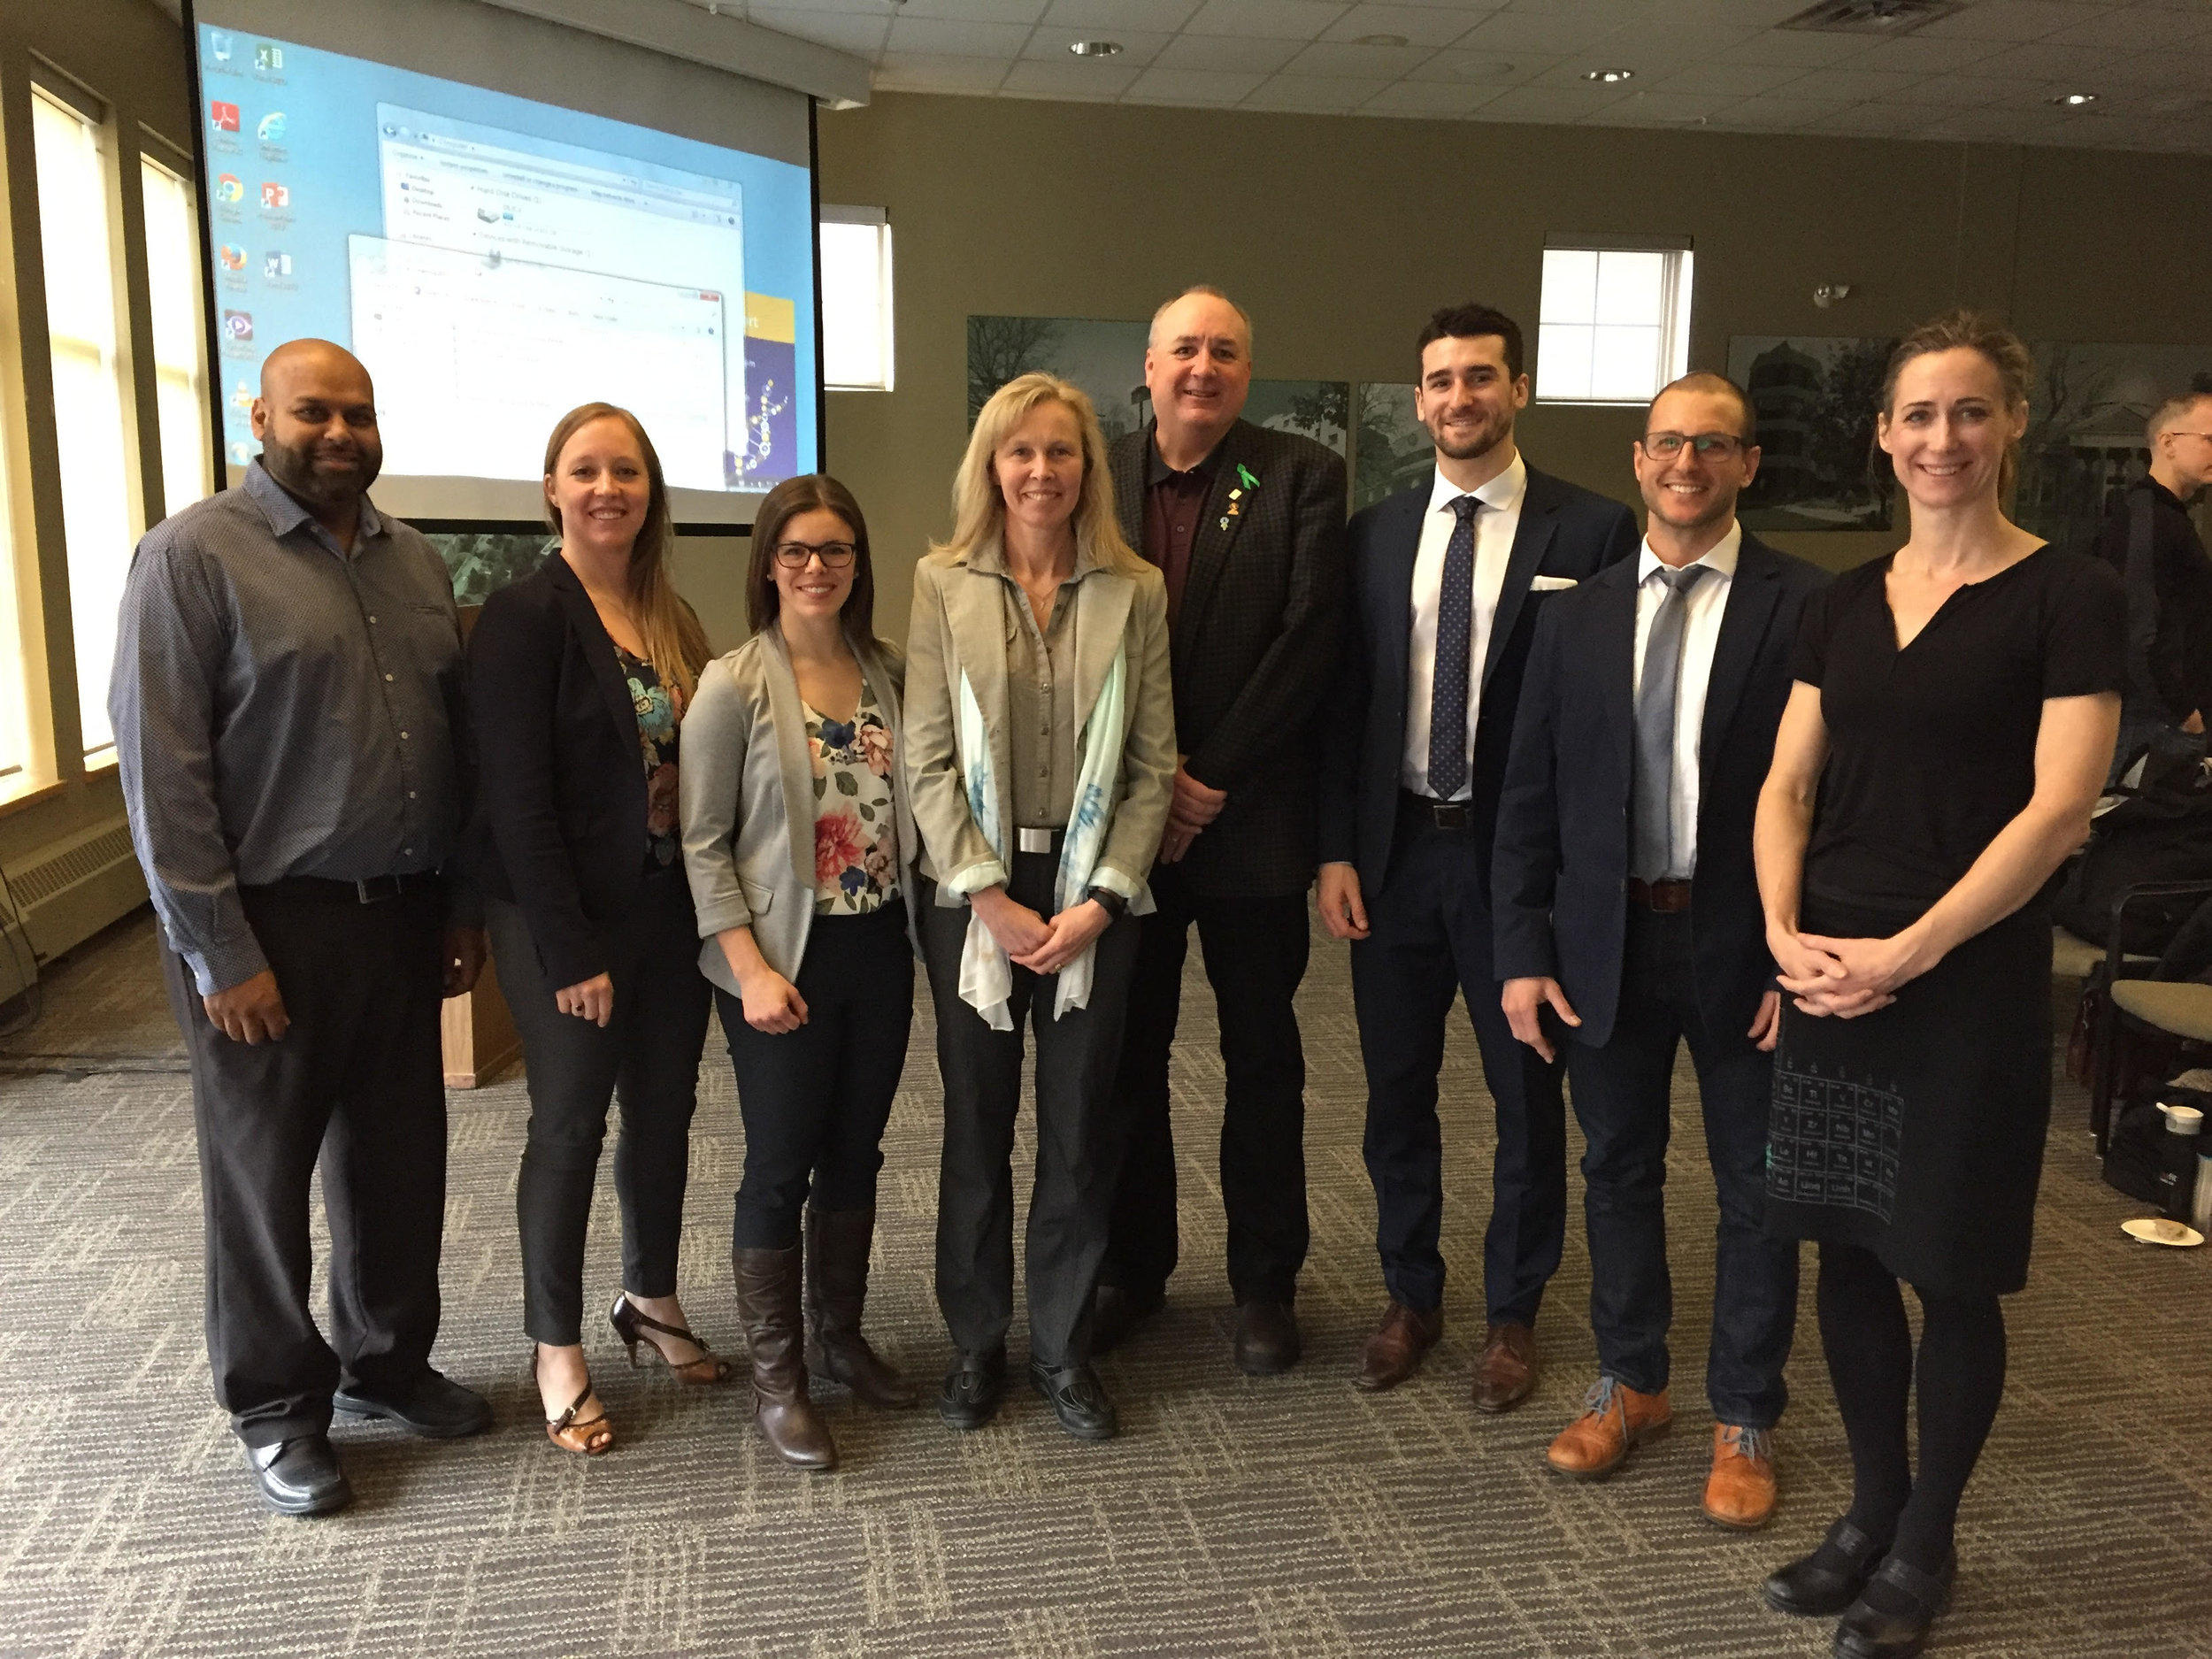 Our Laurier Chapter has hosted a concussion symposium for the Kitchener/Waterloo public for the past five years. The 2017 Symposium featured speakers (left to right) Dr. Randy Bahadour, Dr. Kristine Dalton, Katie Mitchell (PhD candidate), Dr. Jill Tracey, Gordon Stringer, Ben Fanelli, Dr. Michael Cinelli, and Dr. Jayne Kalmar